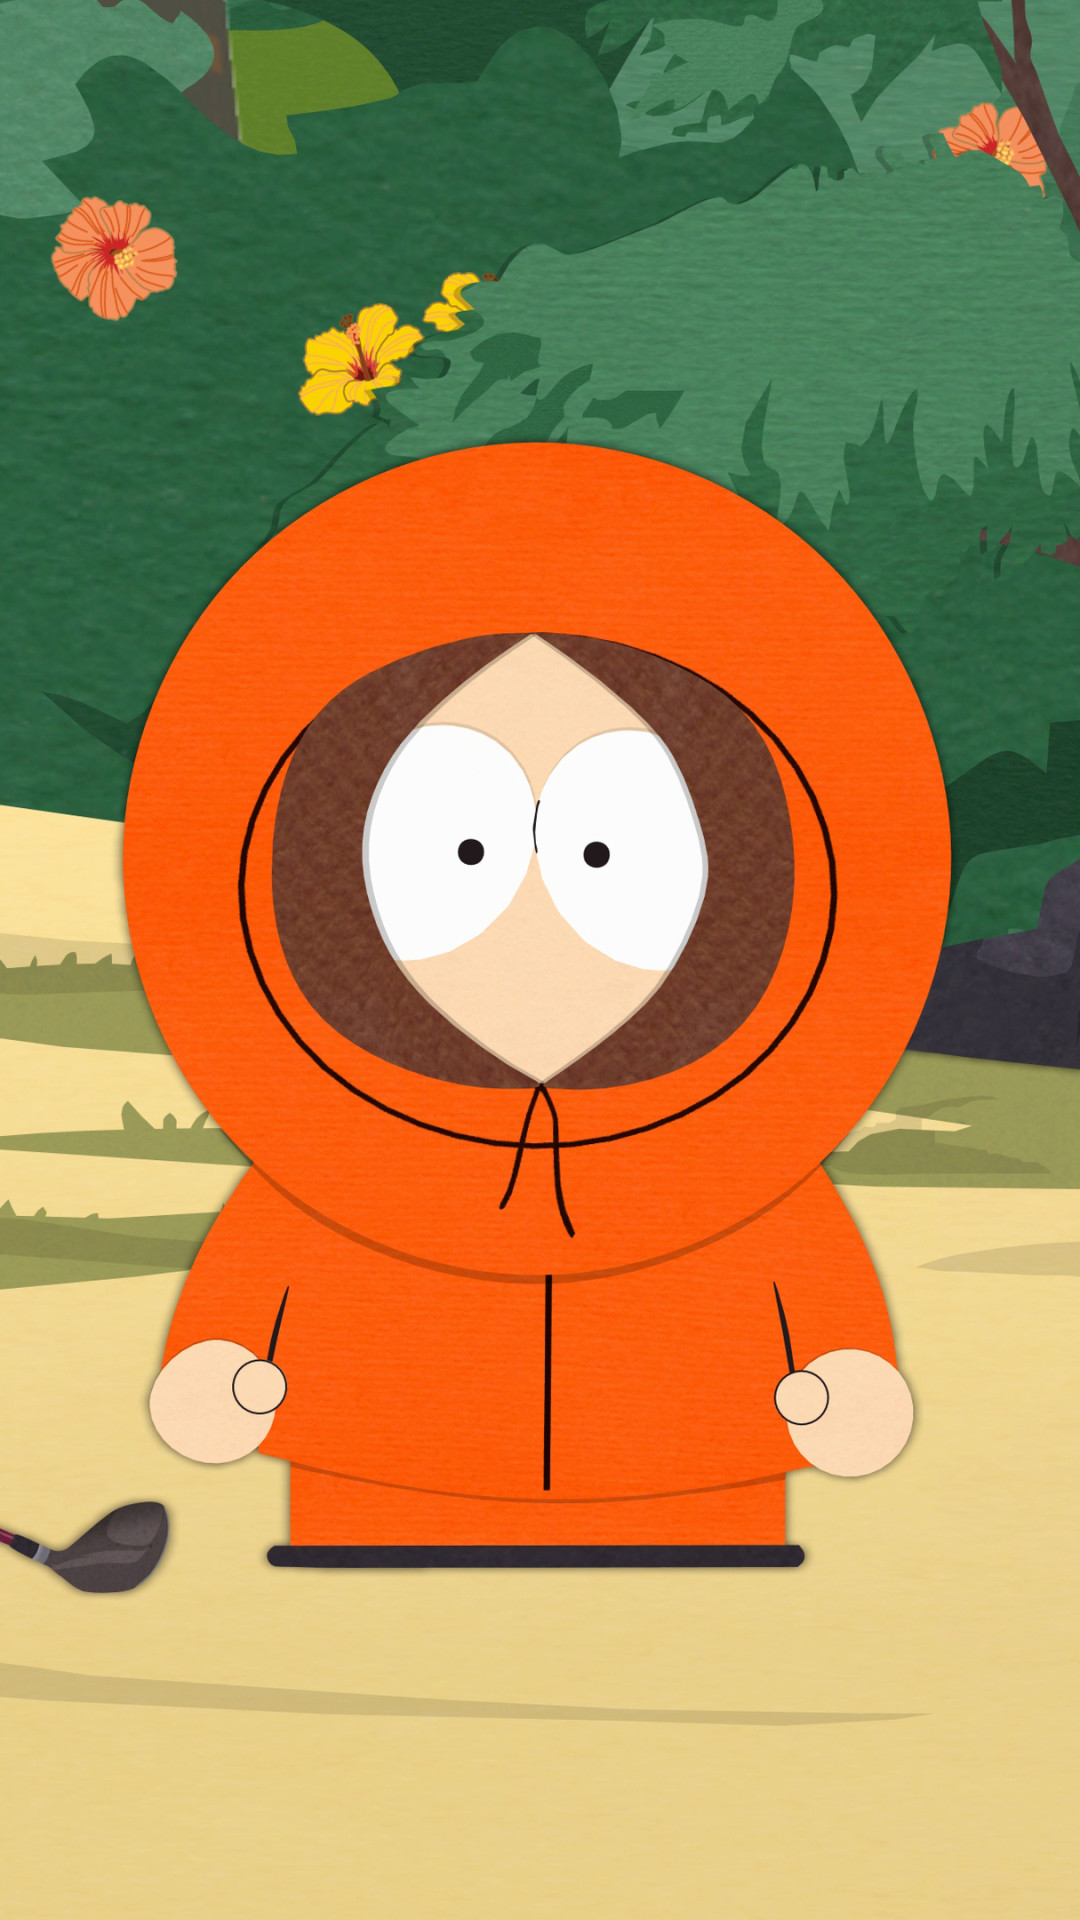 Tv Show South Park Butters Stotch Kenny Mccormick Kenny